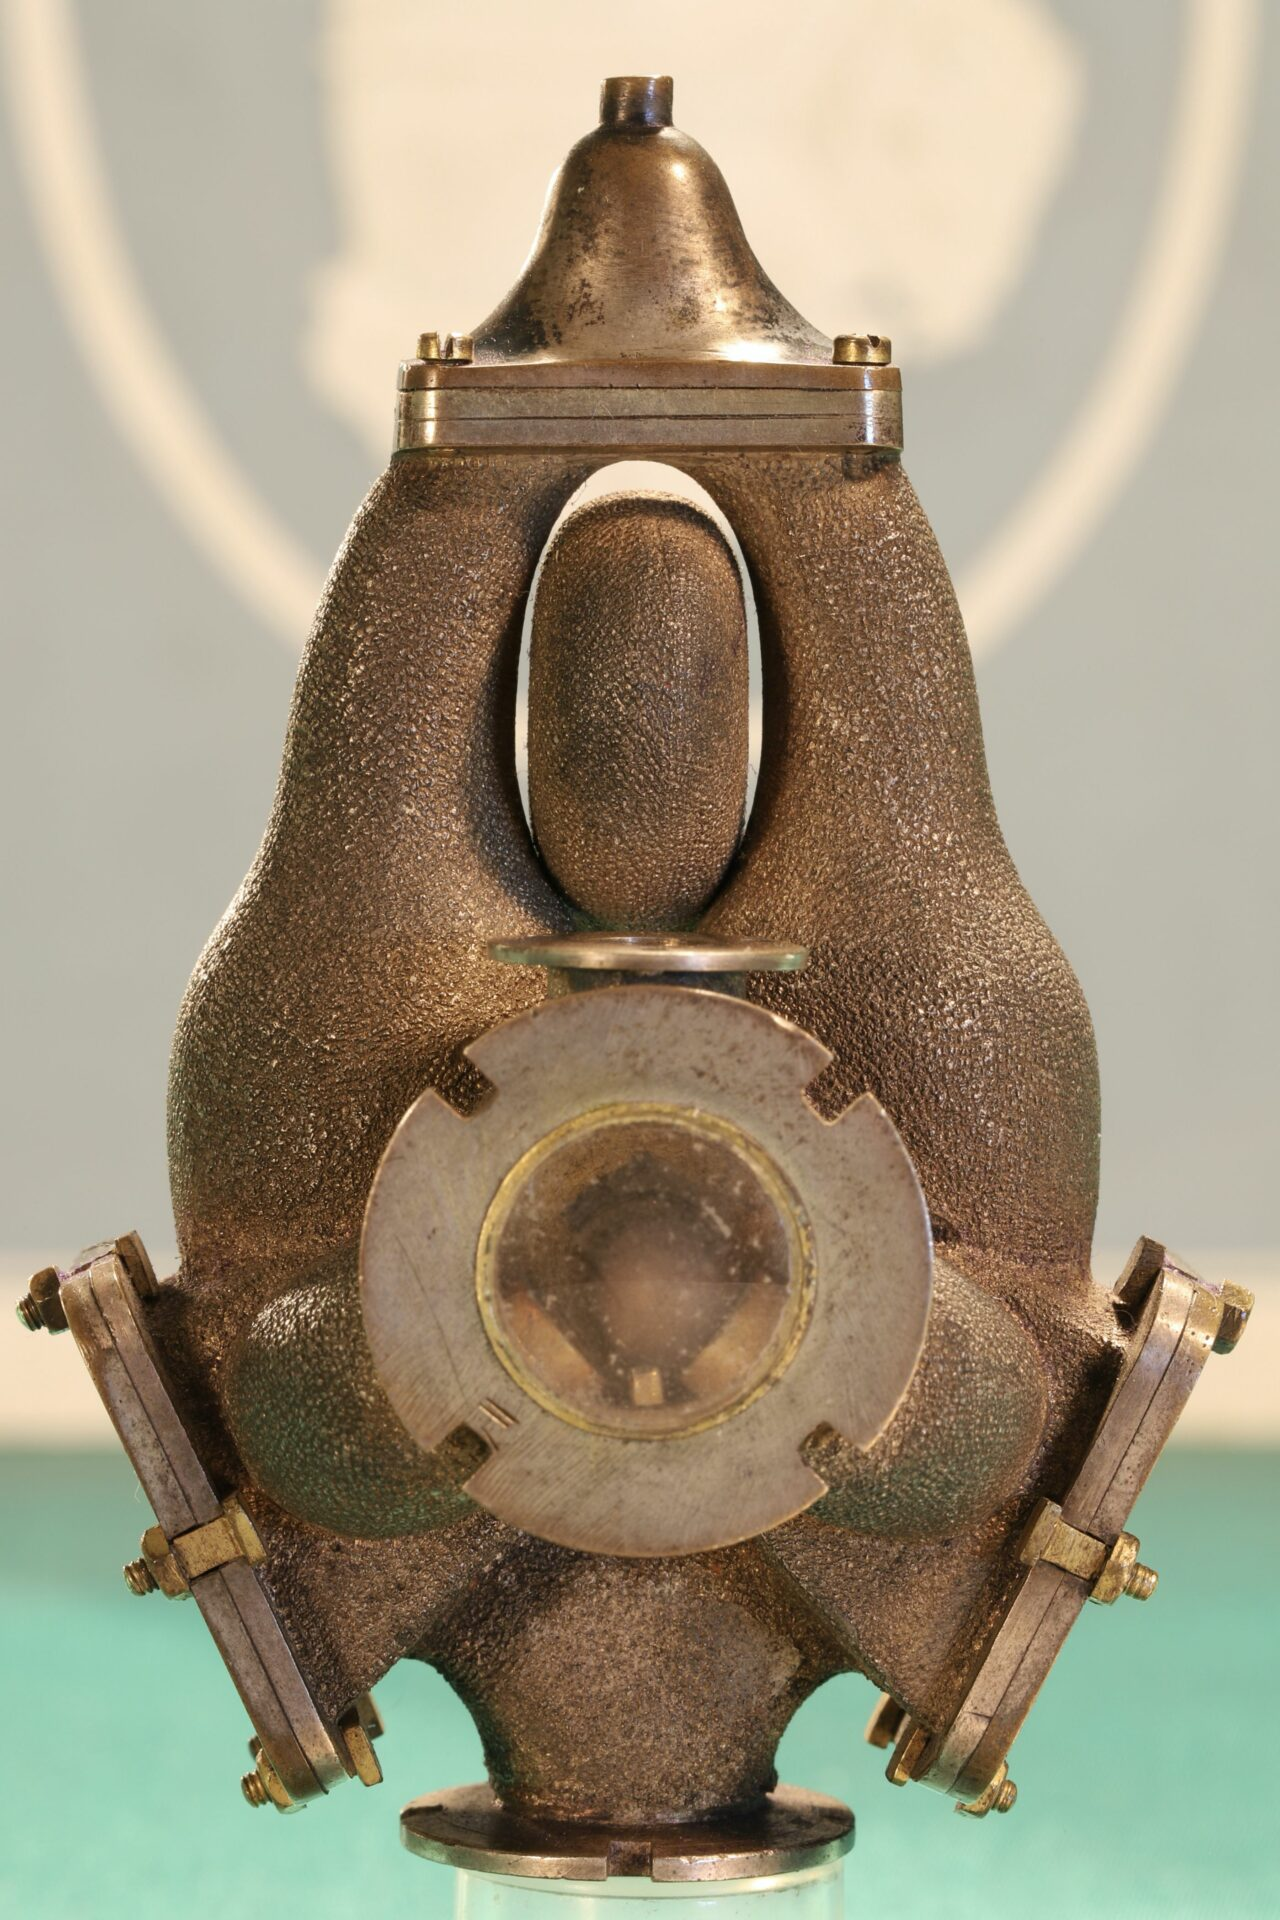 Image of front of Pulsometer Steam Pump Model c1905